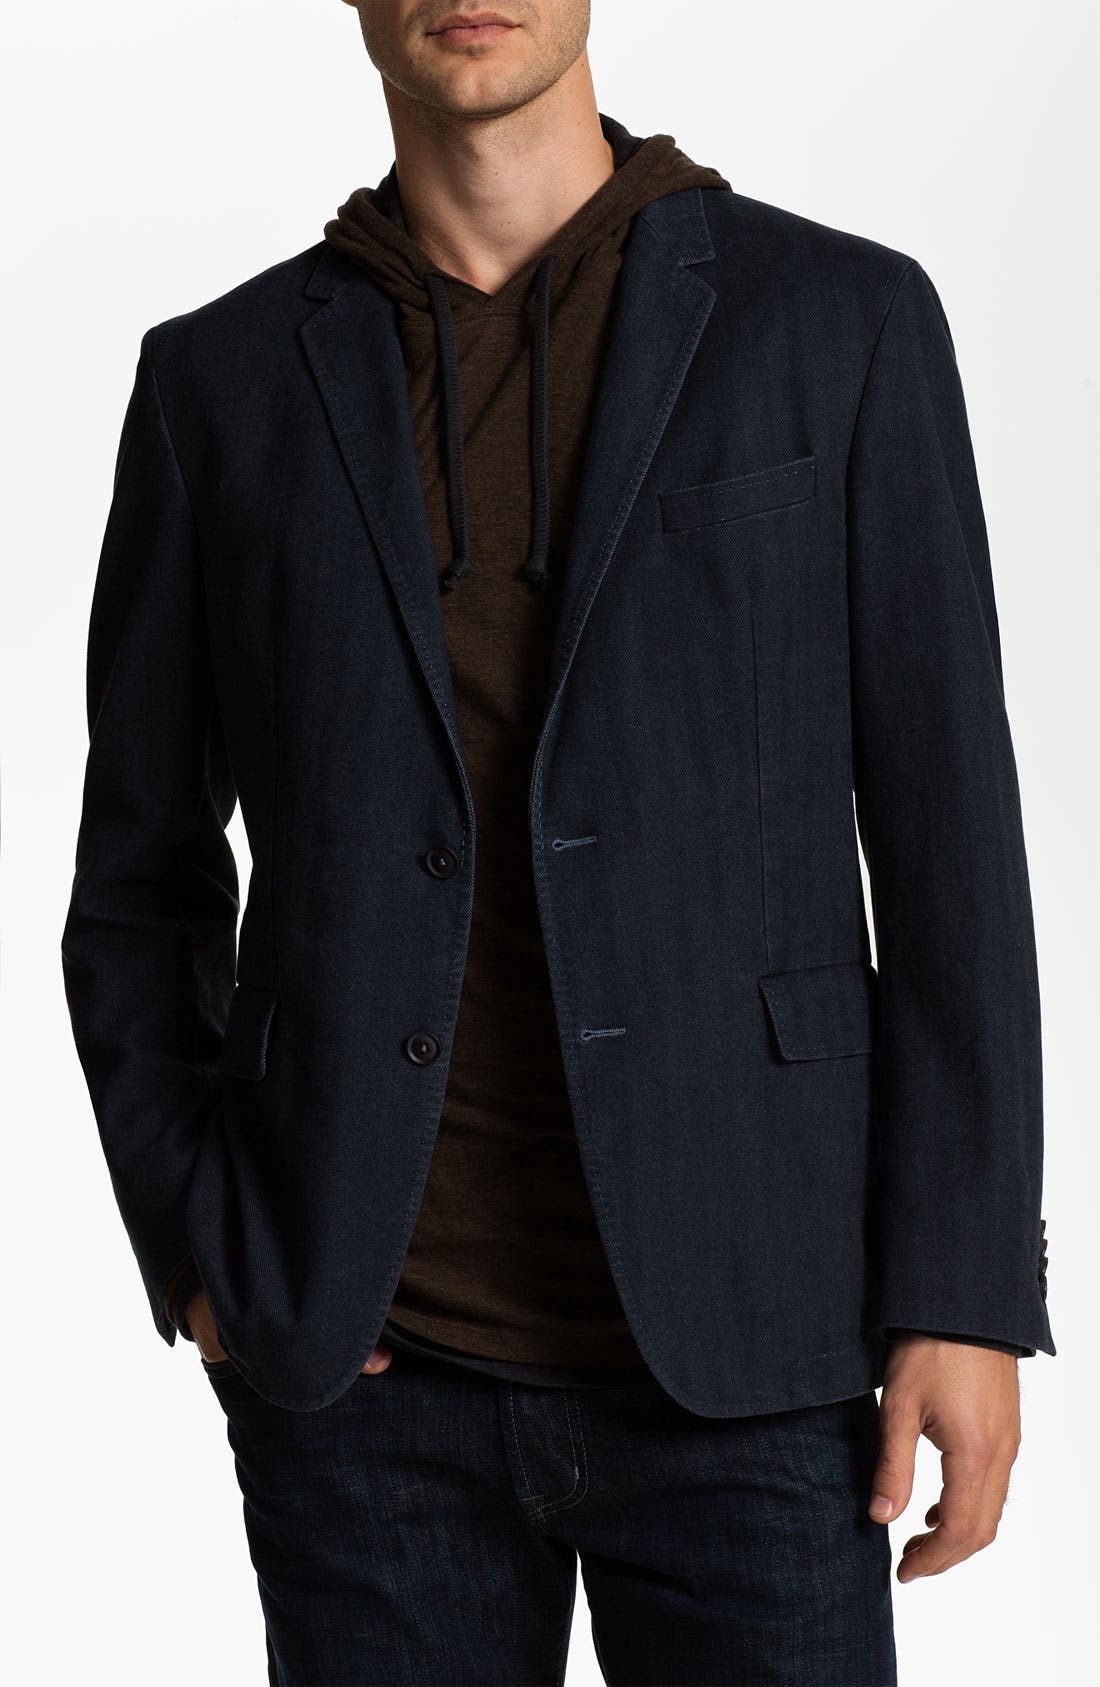 Alternate Image 1 Selected - BOSS Black 'Miles' Trim Fit Blazer